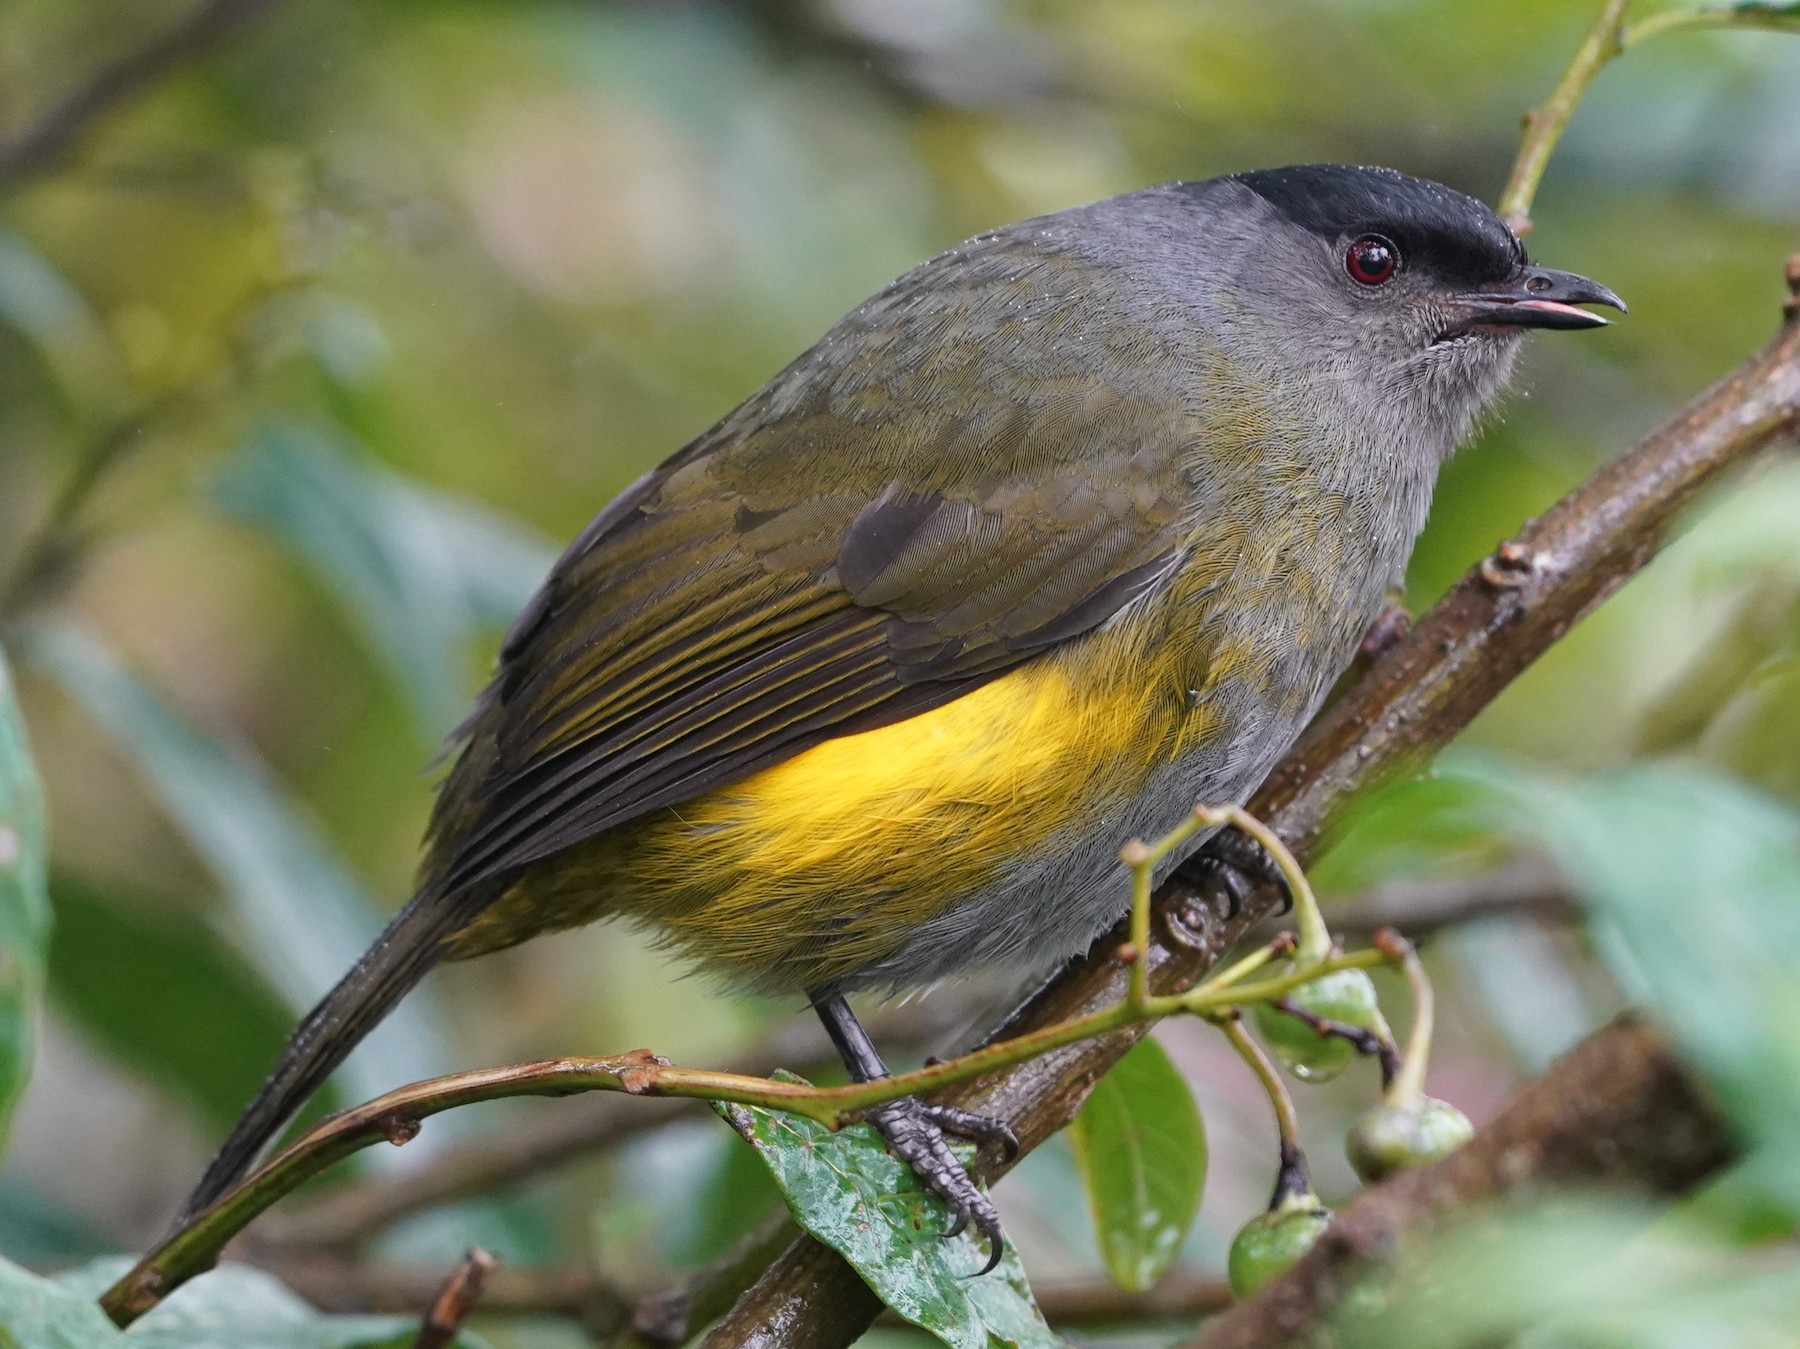 Black-and-yellow Silky-flycatcher - Sunil Thirkannad